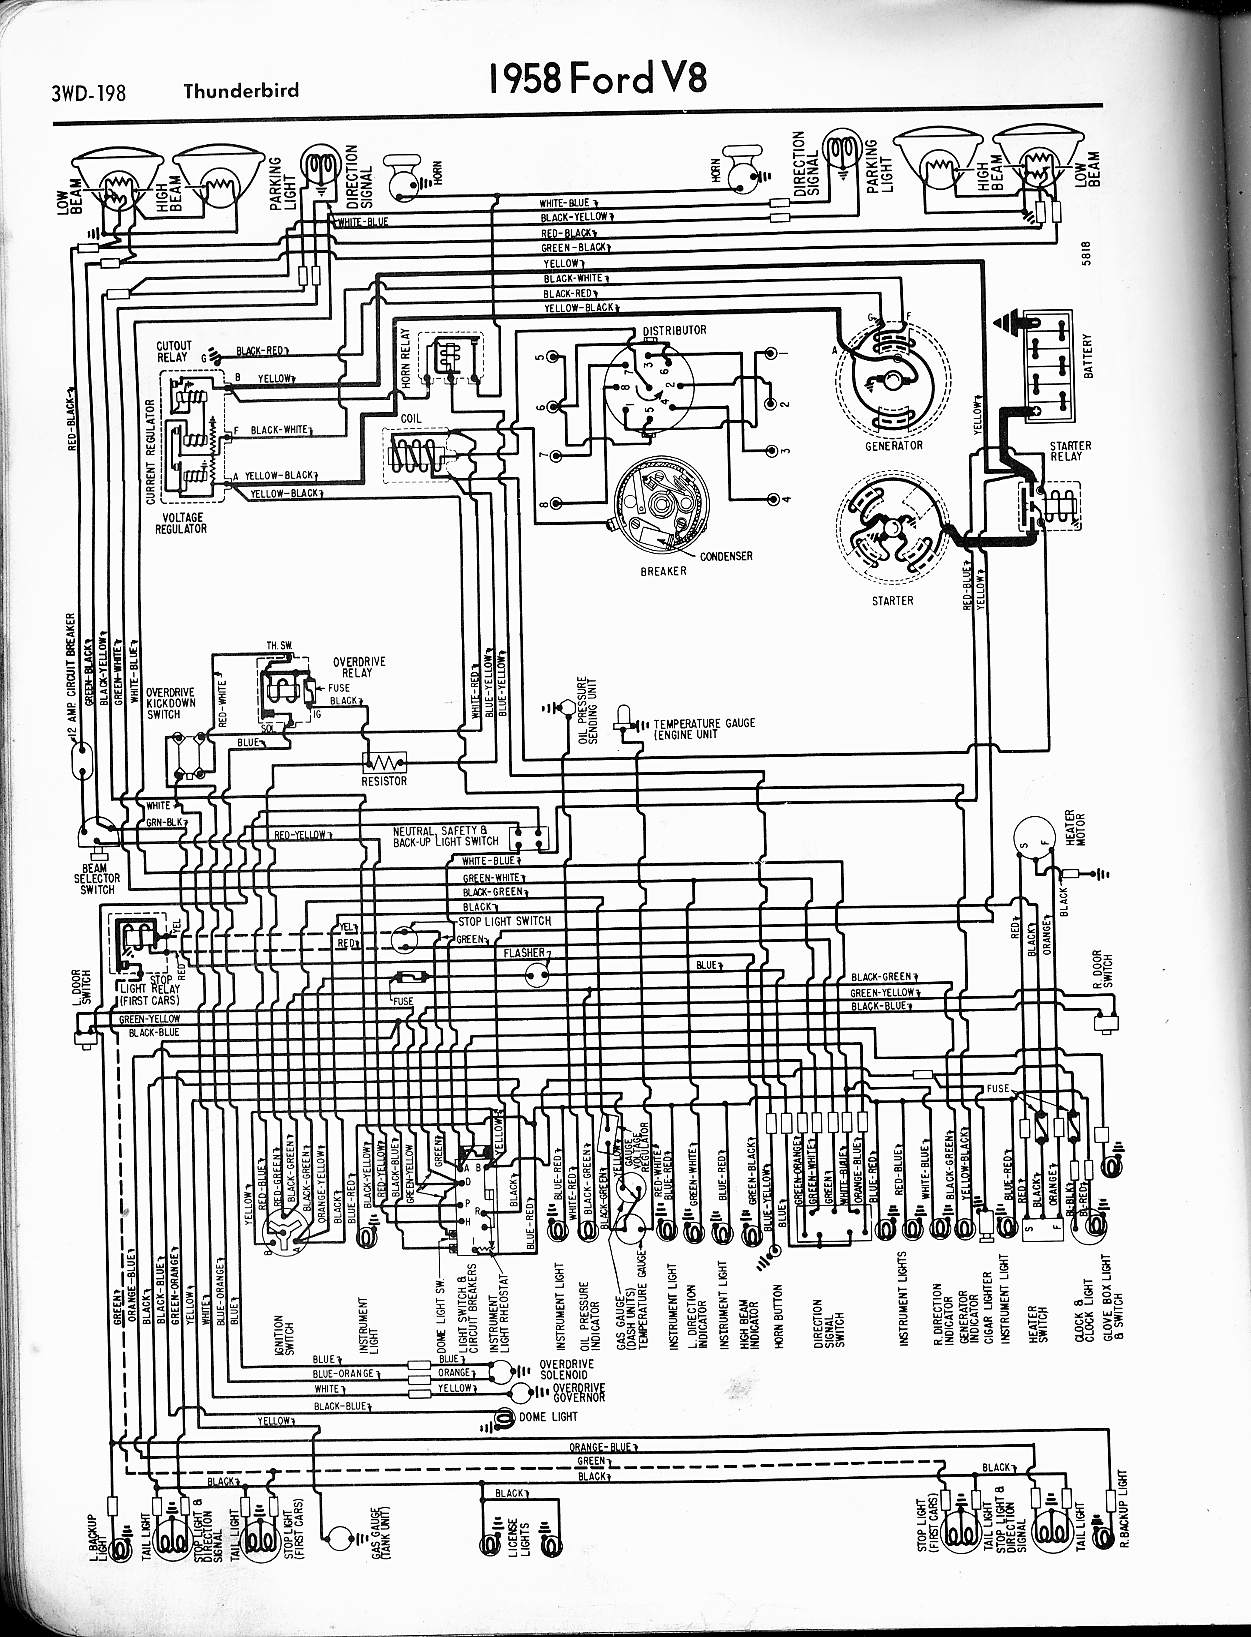 1958 ford ranchero wiring diagram example electrical wiring diagram u2022 rh olkha co